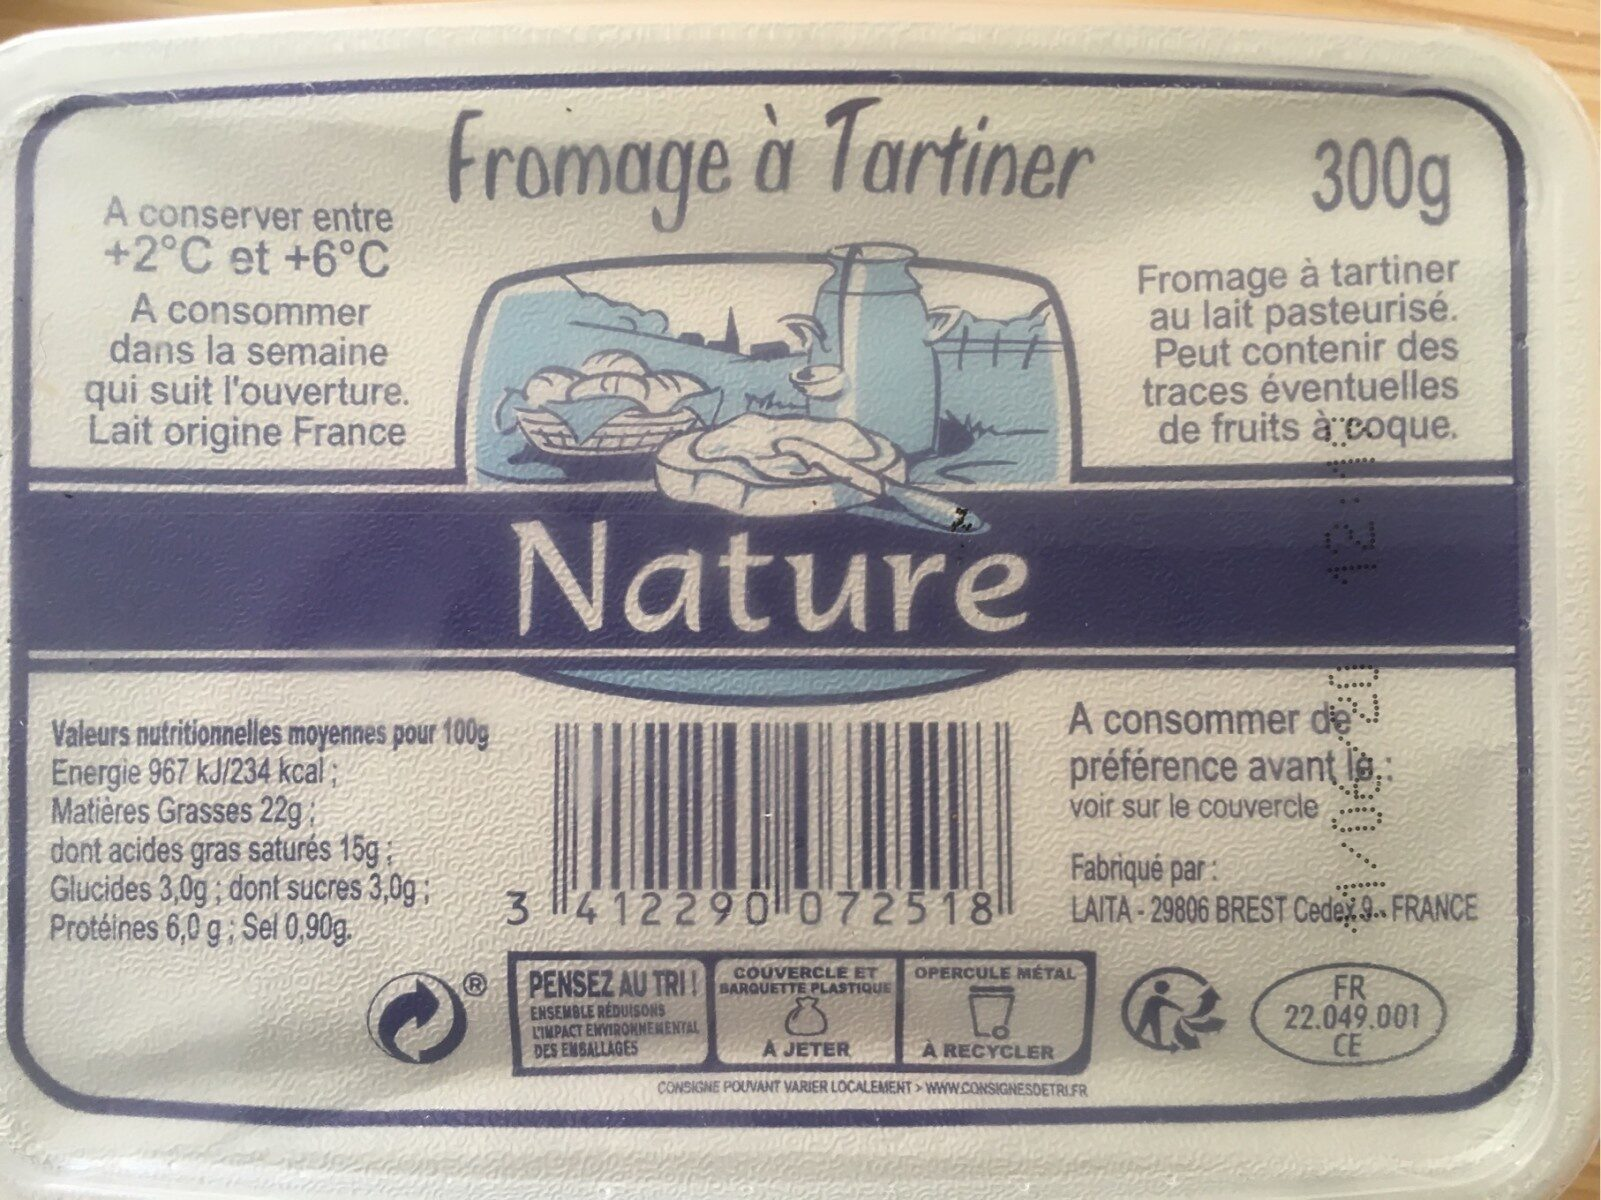 Fromage a tartiner nature - Produit - fr